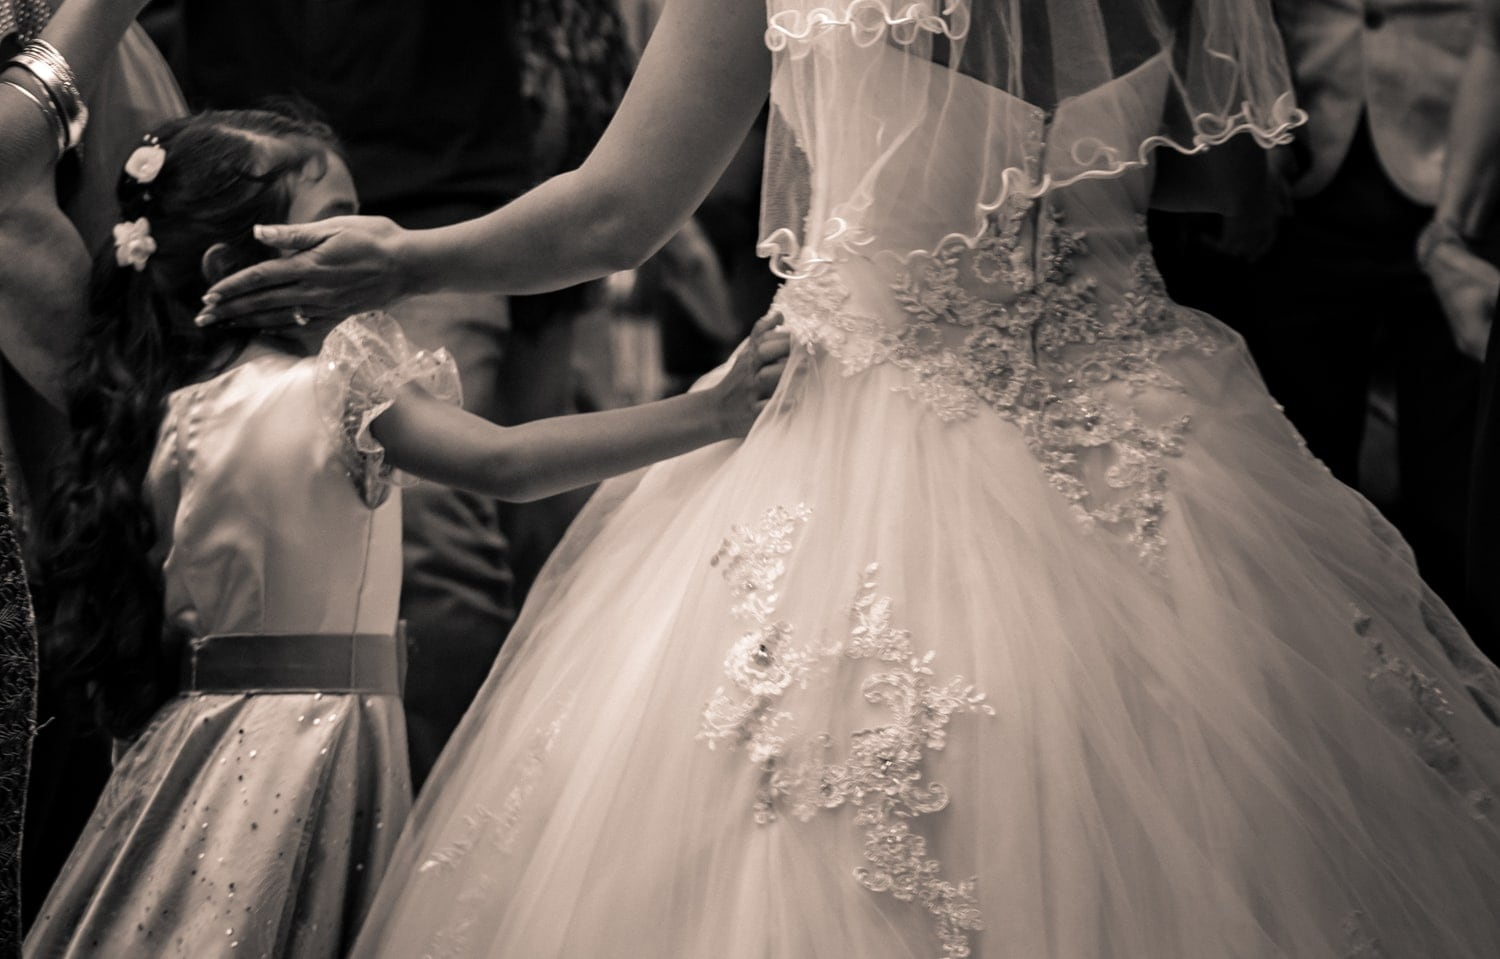 Black and white photo of bride and flower girl sharing a moment.